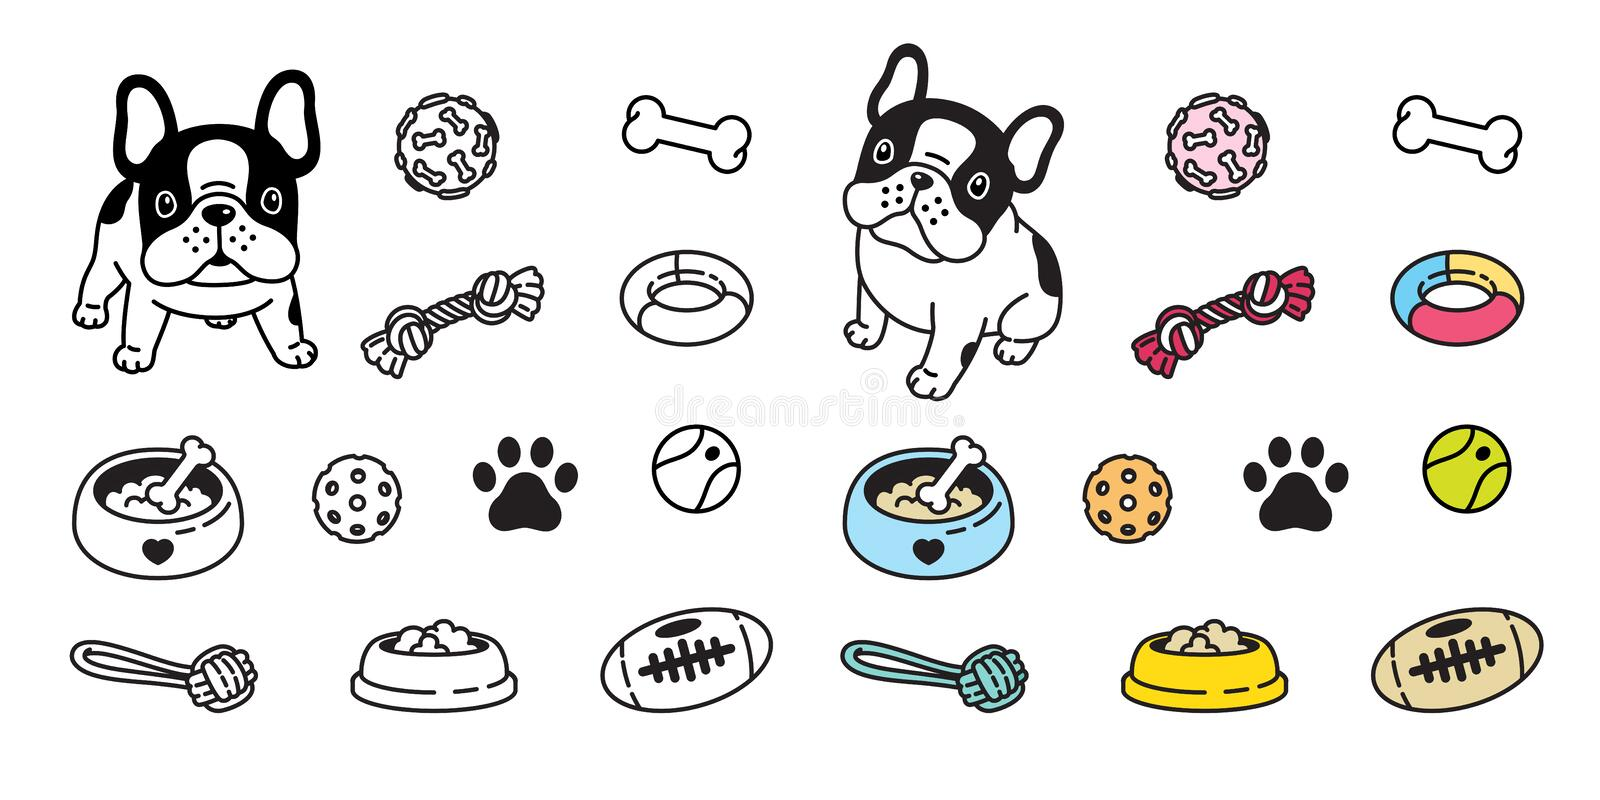 Dog vector french bulldog icon paw bone food bowl ball toy footprint cartoon character illustration doodle vector illustration